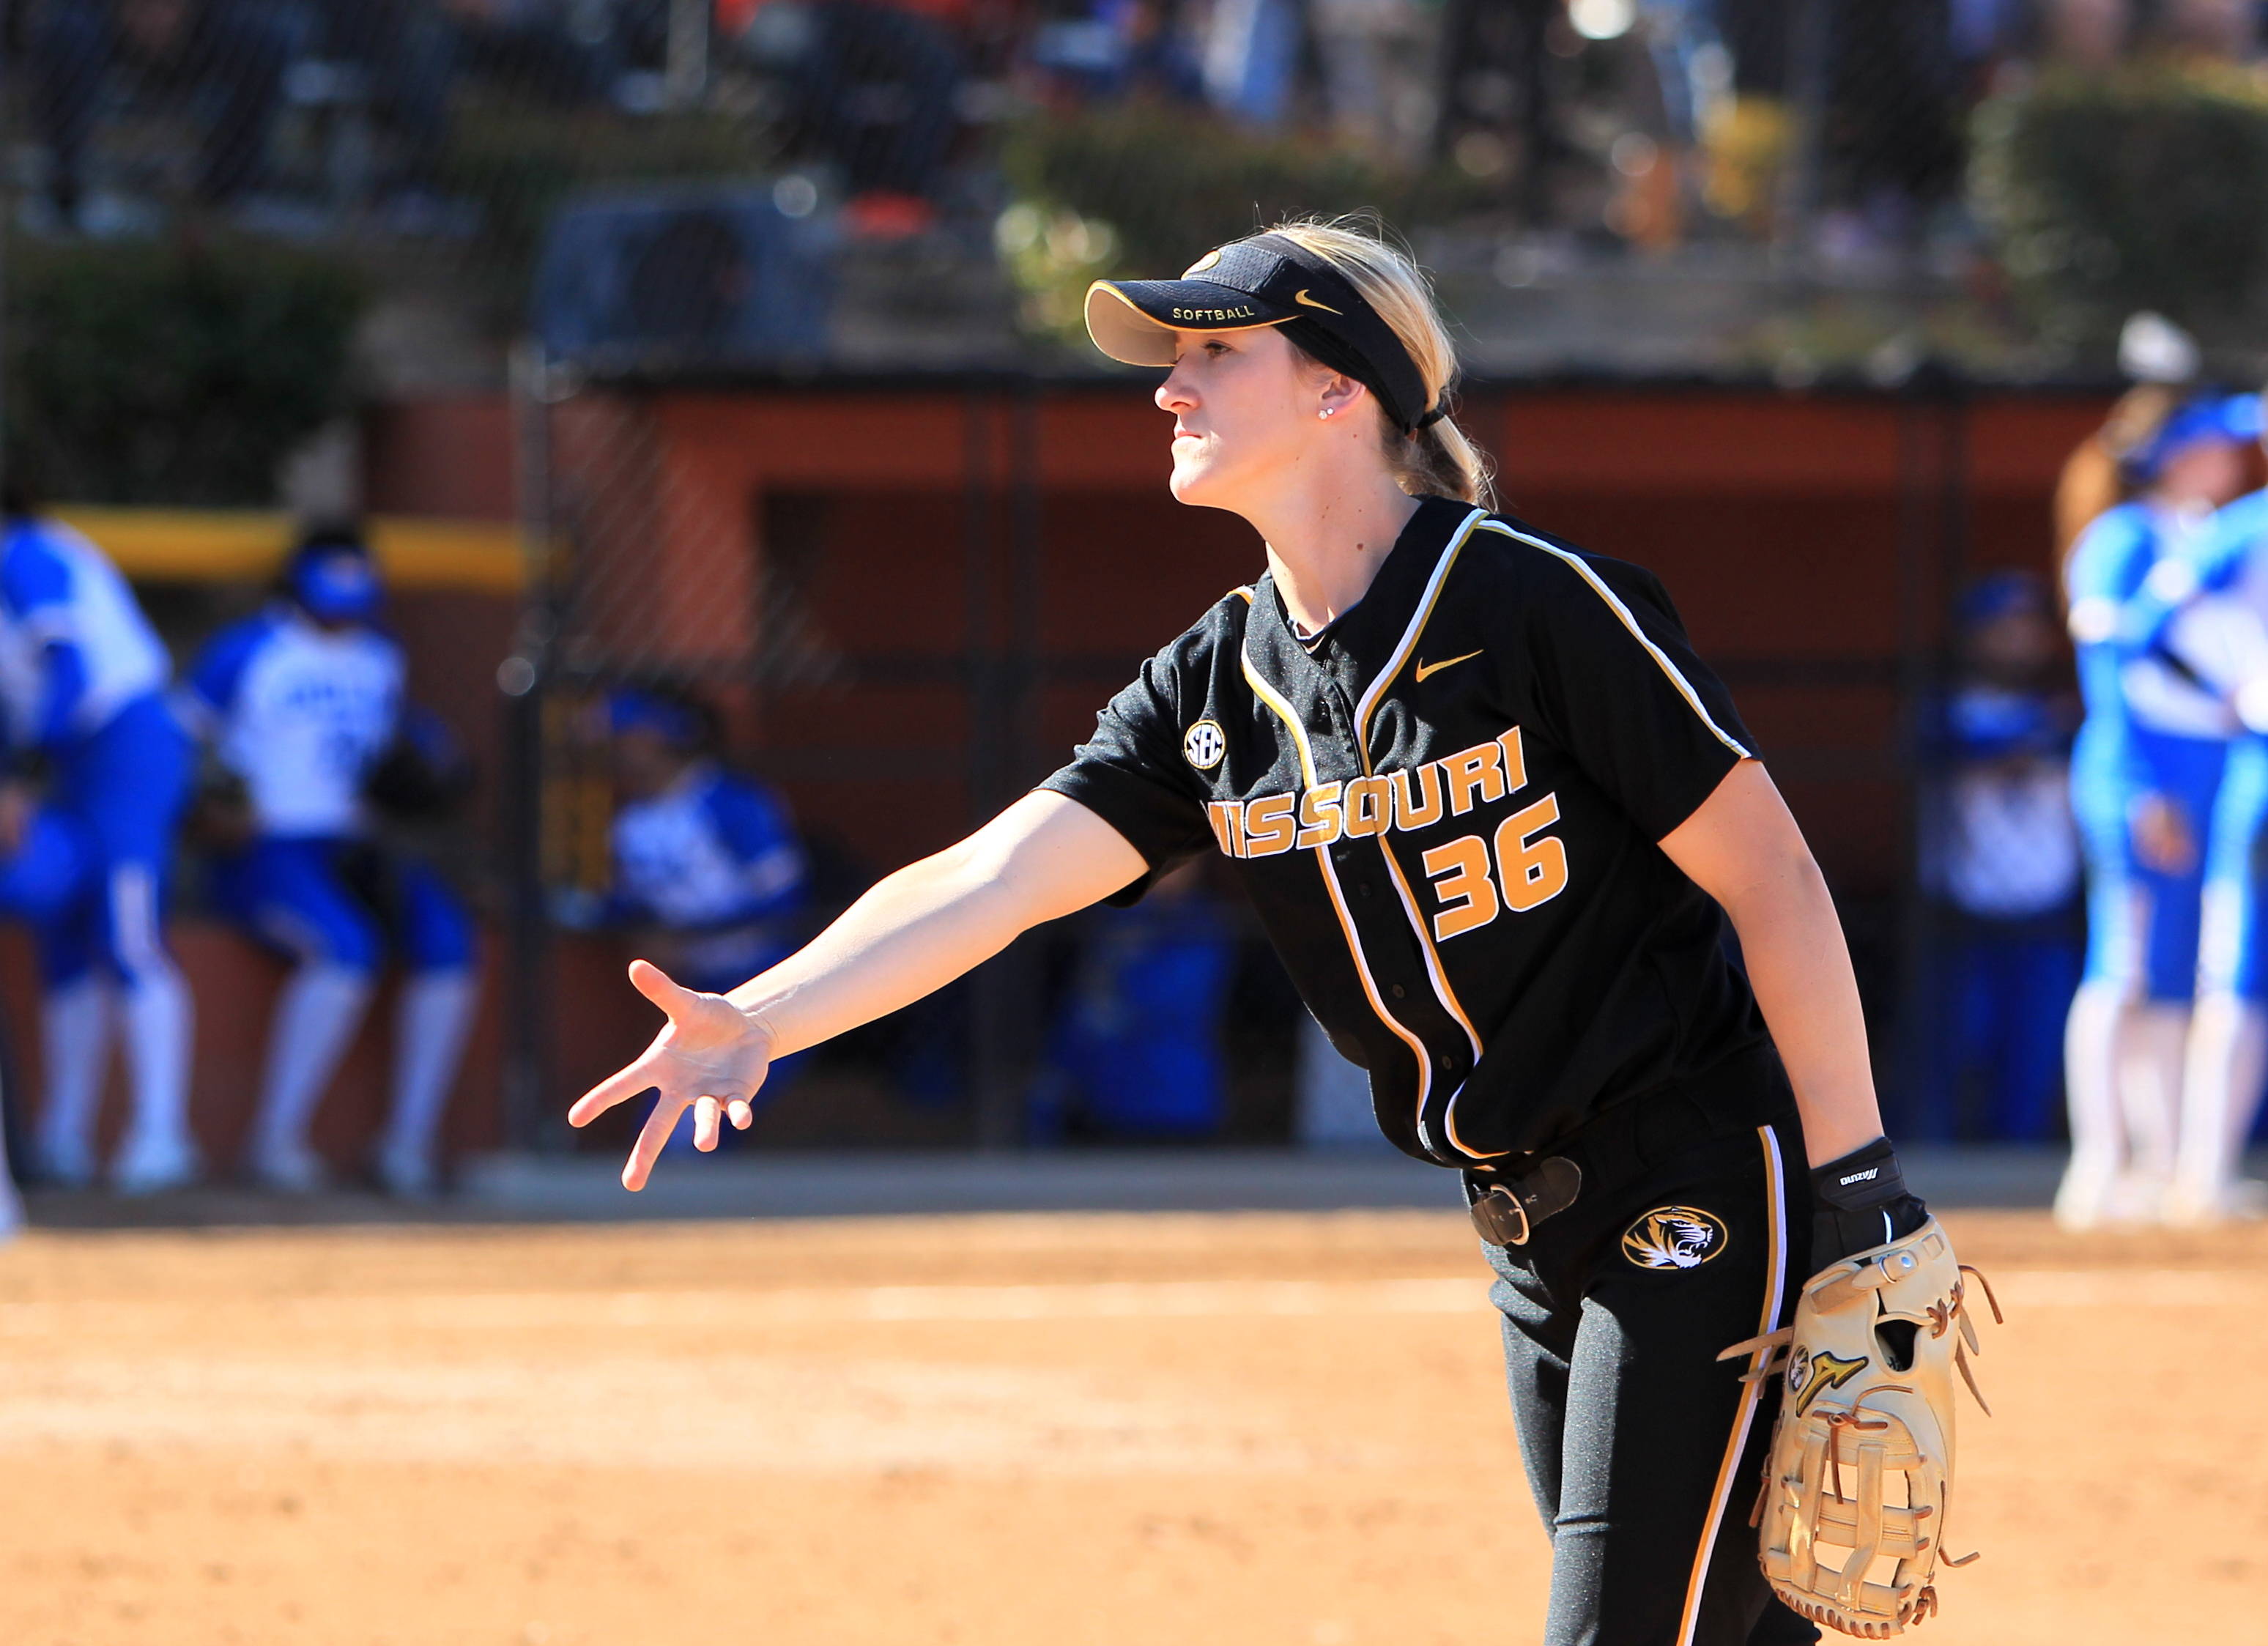 MizzouSoftball Opens 2018 Home Schedule This Weekend with Mizzou